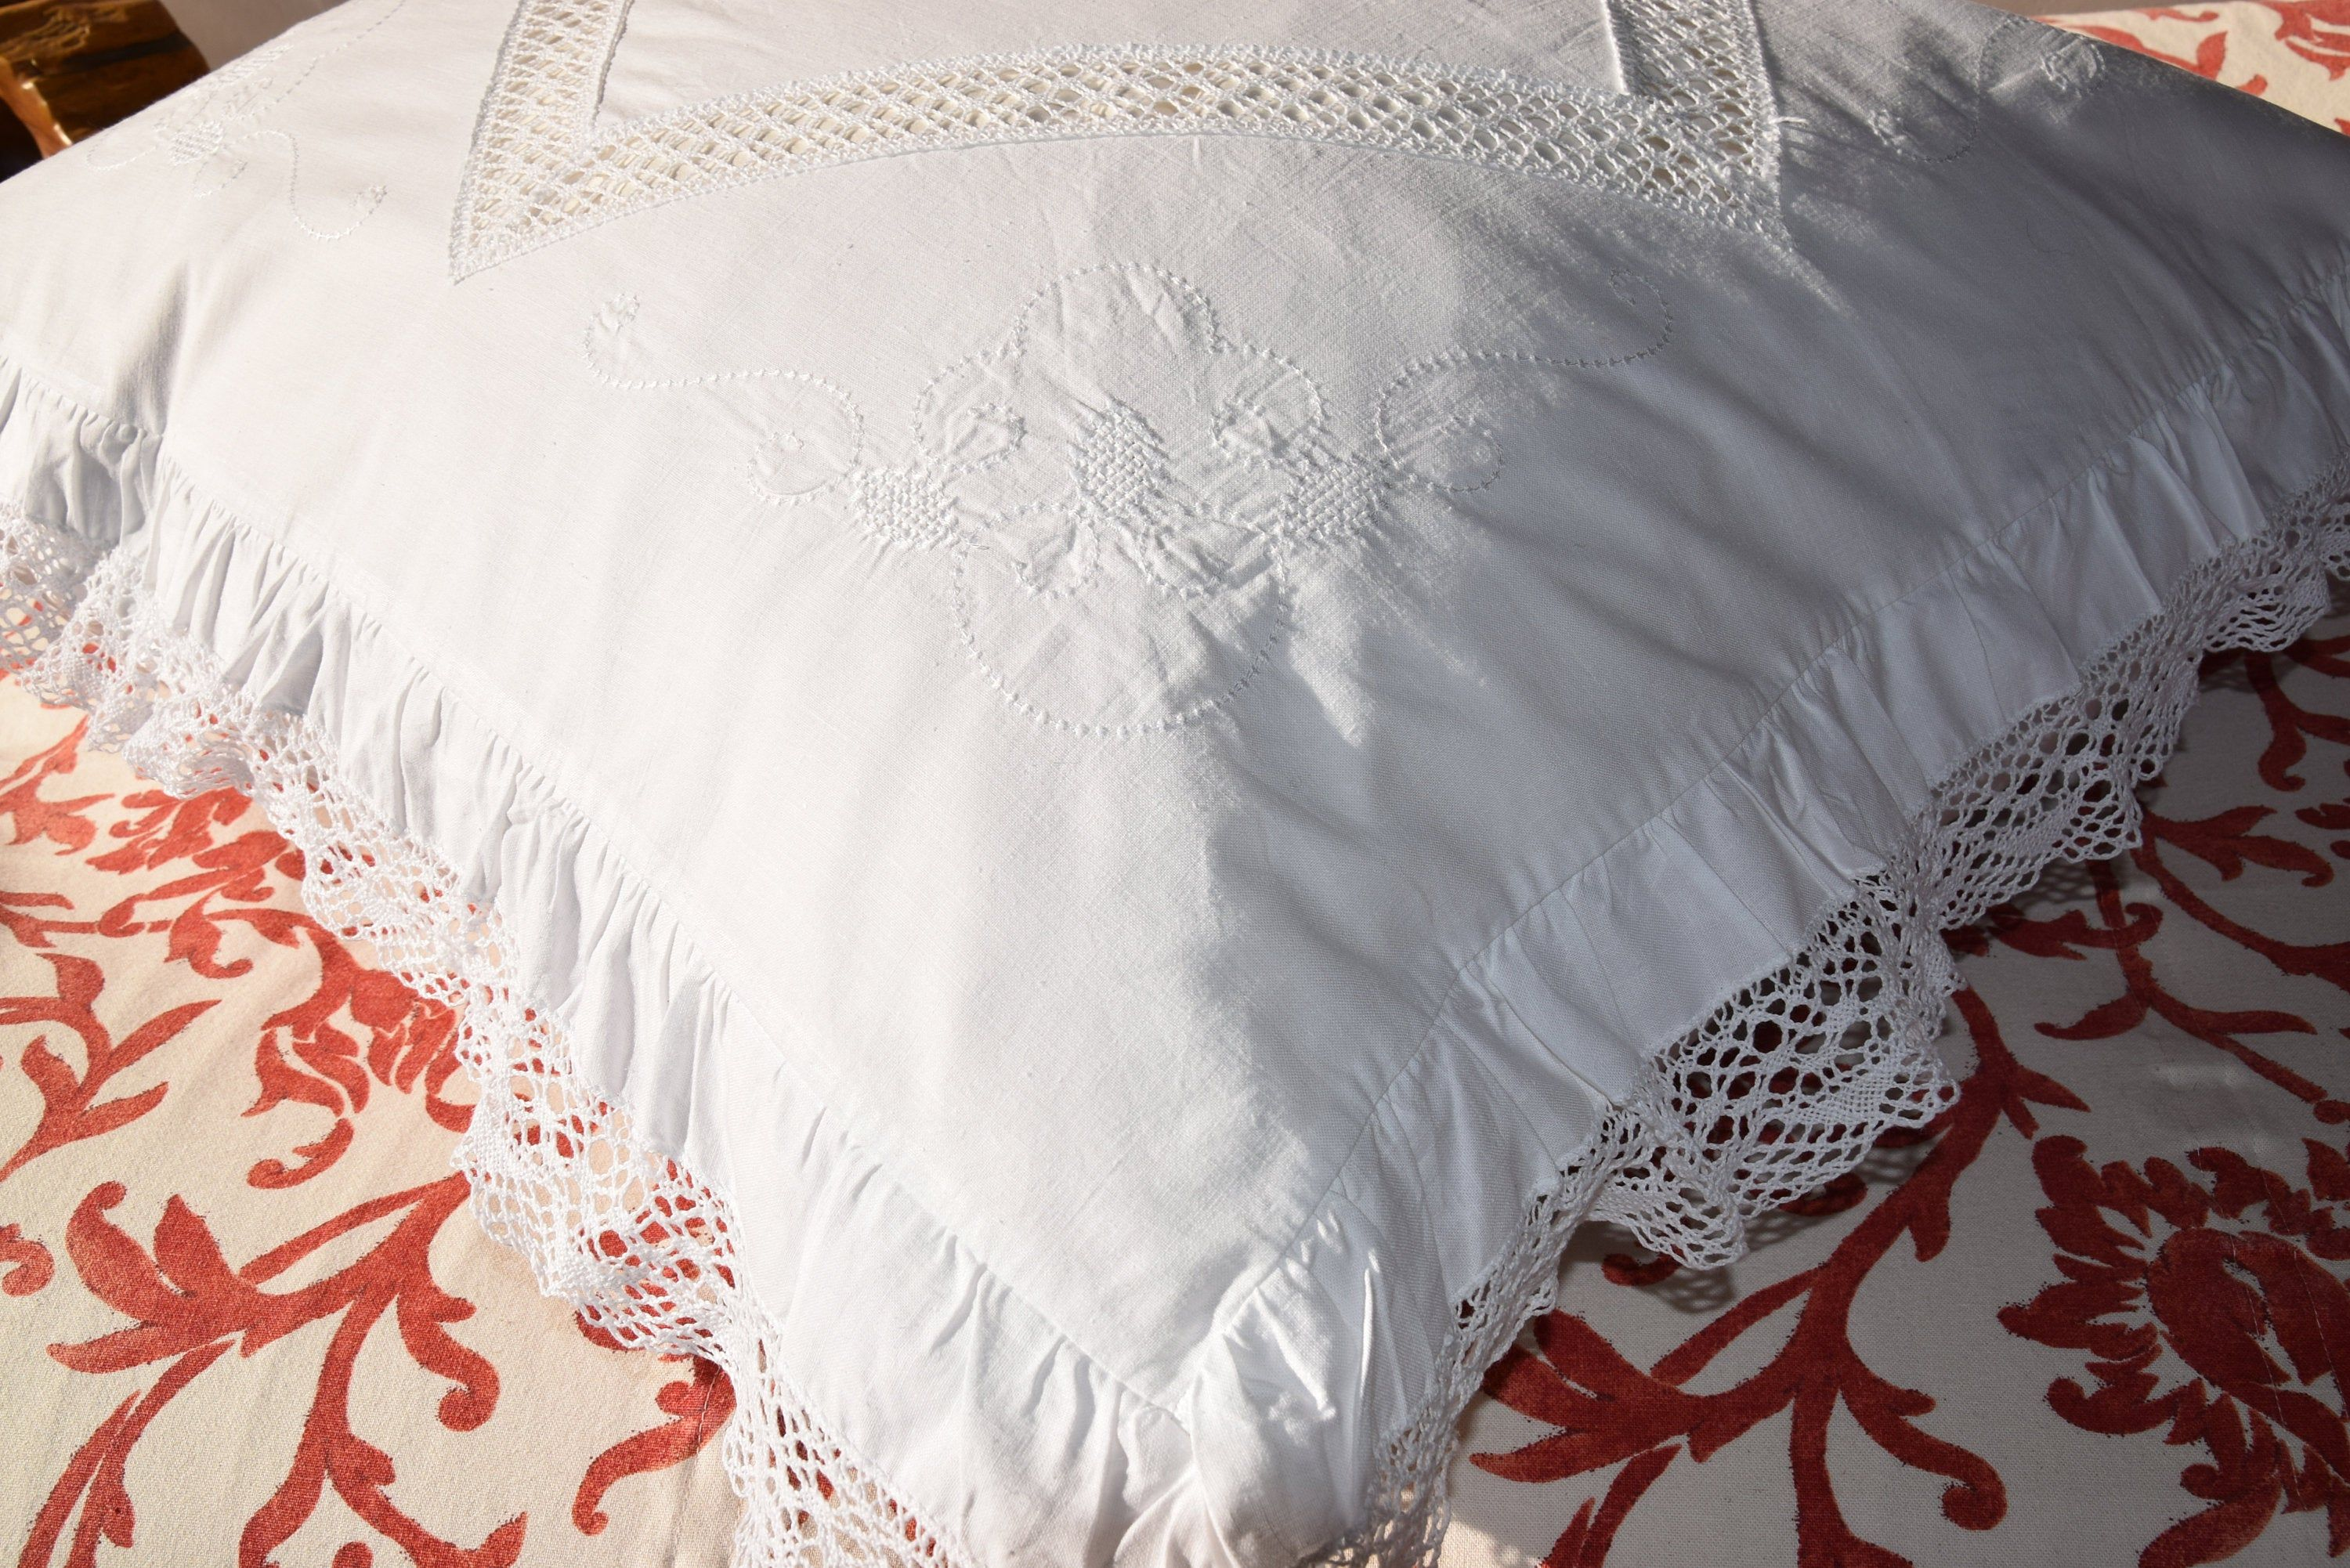 Antique Pillowcases White Pair His and Hers Vintage Hand Crochet and Embroidery Bed Linens Crisp White Cases